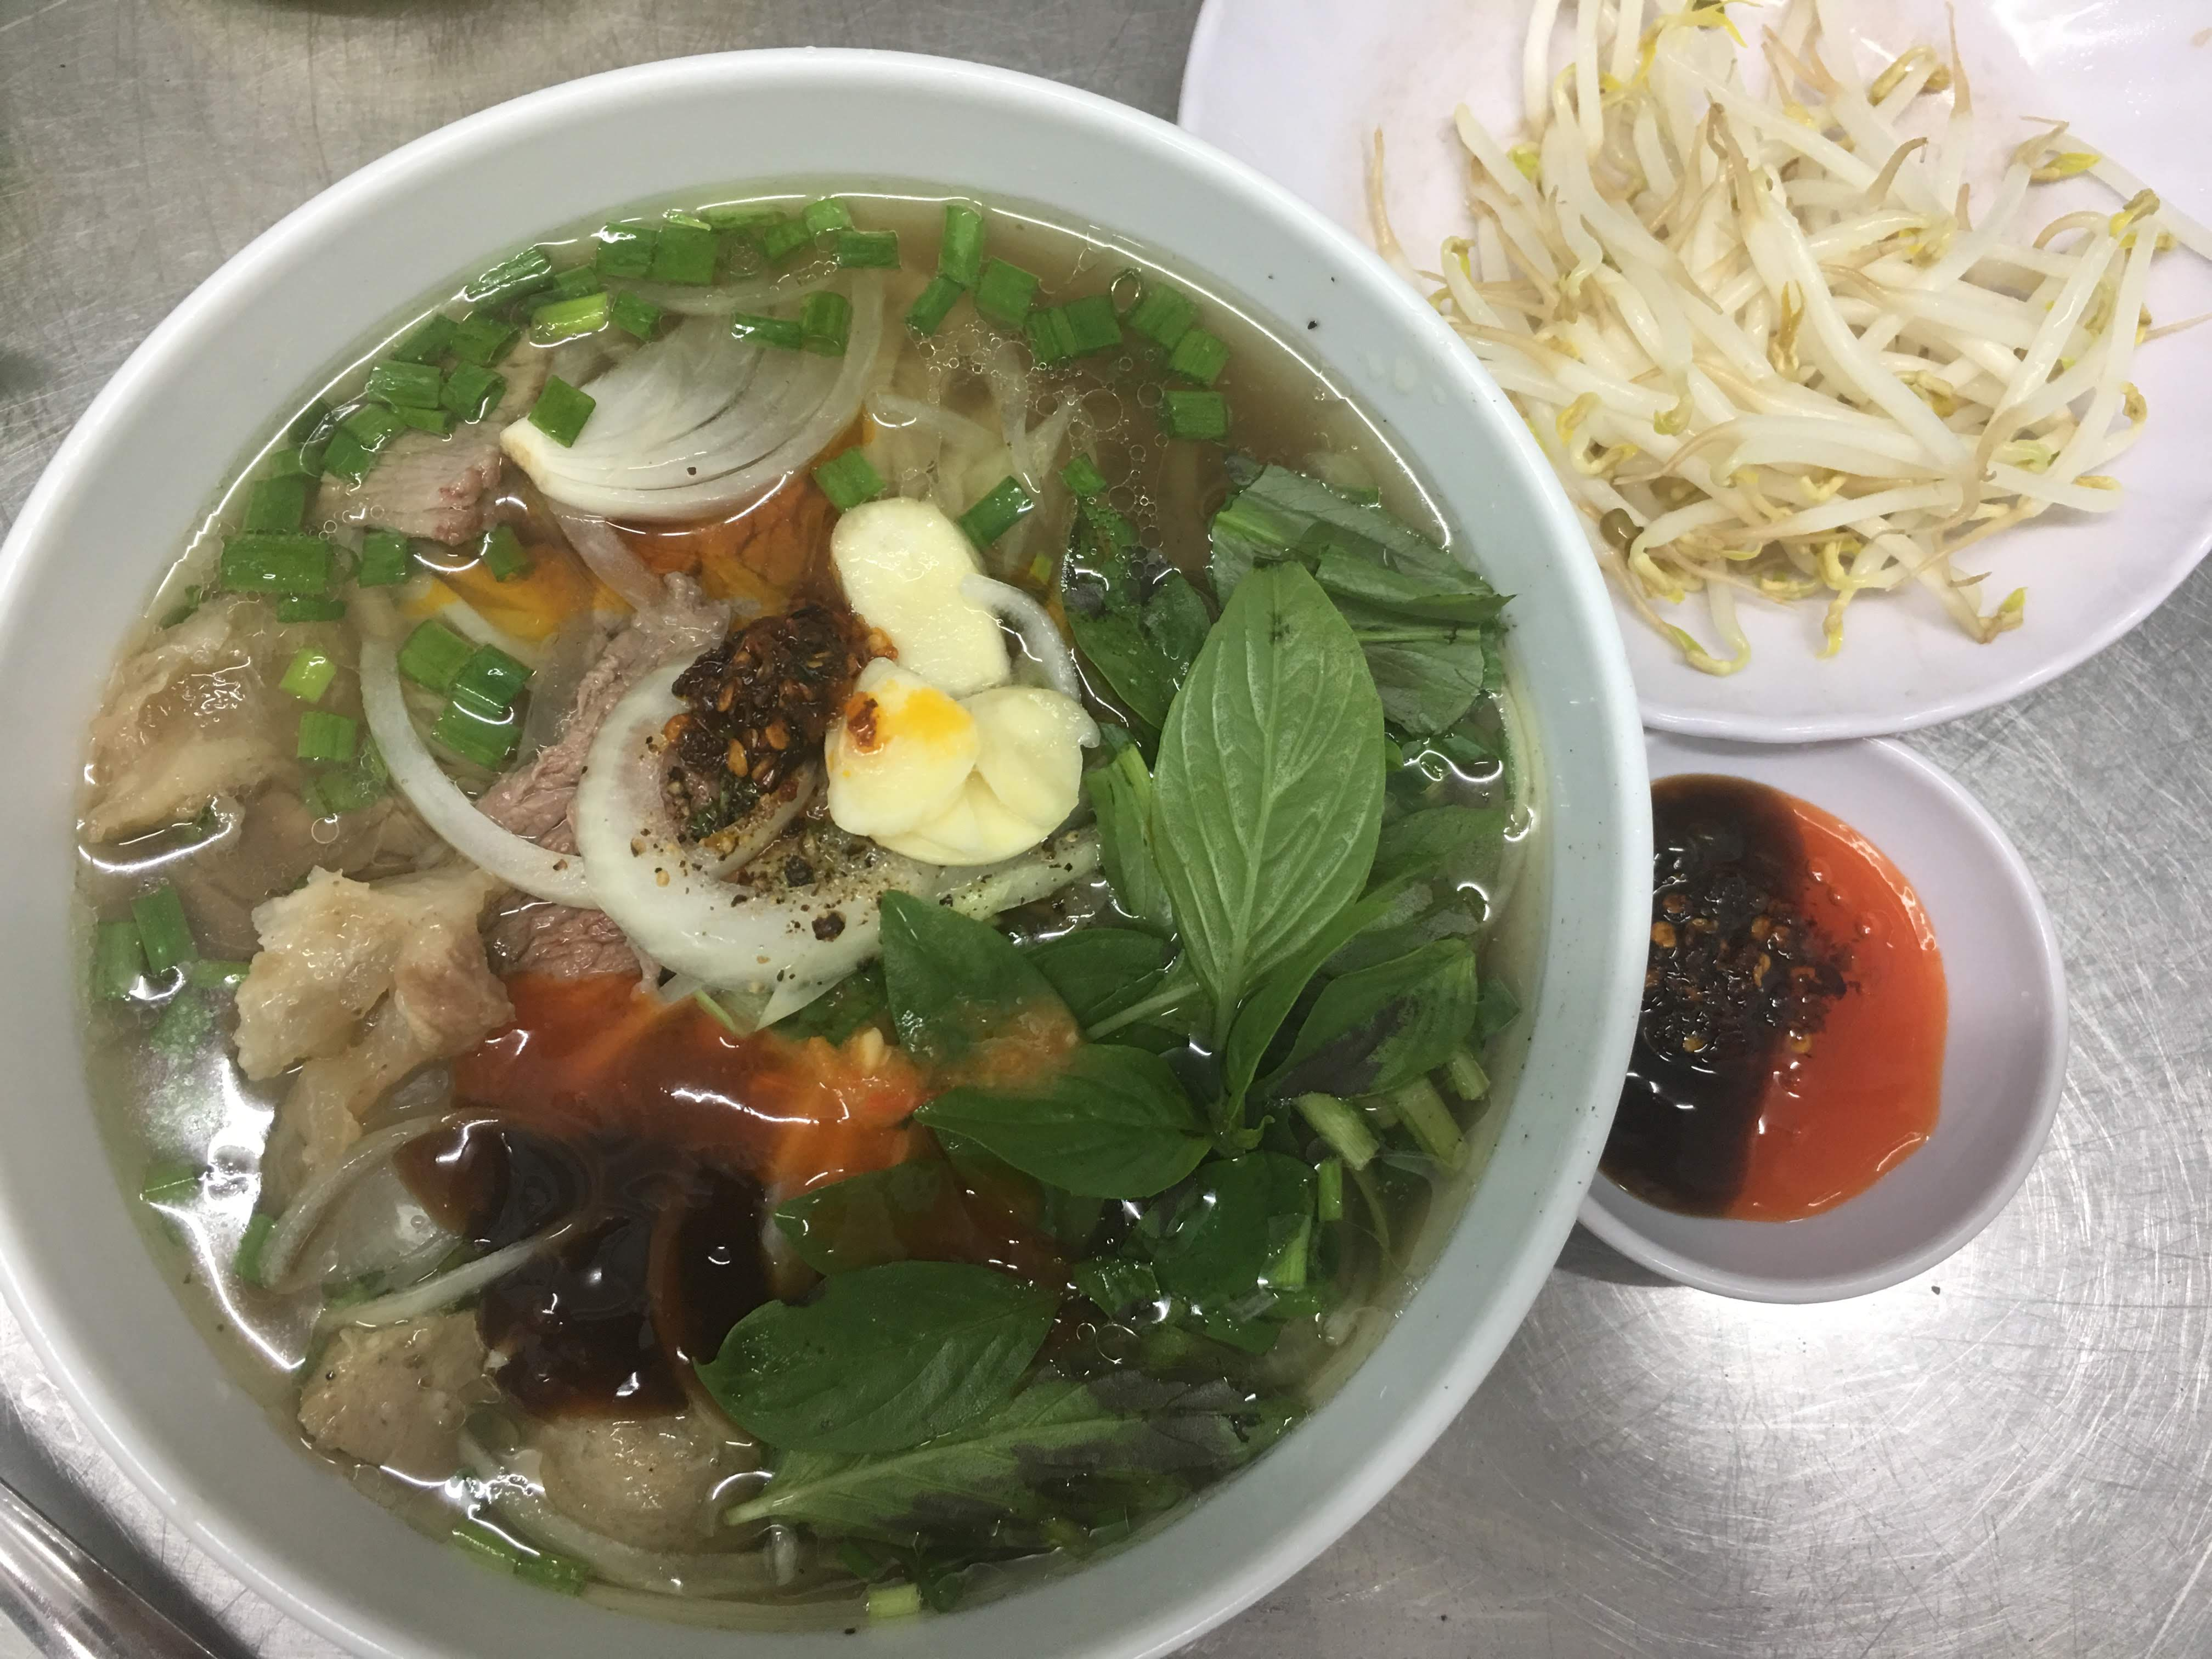 Southern-styled pho is served with mung bean sprouts, herbs and chili and hoisin sauces at a stall in Ho Chi Minh City's Phu Nhuan Street. Photo: Dong Nguyen / Tuoi Tre News